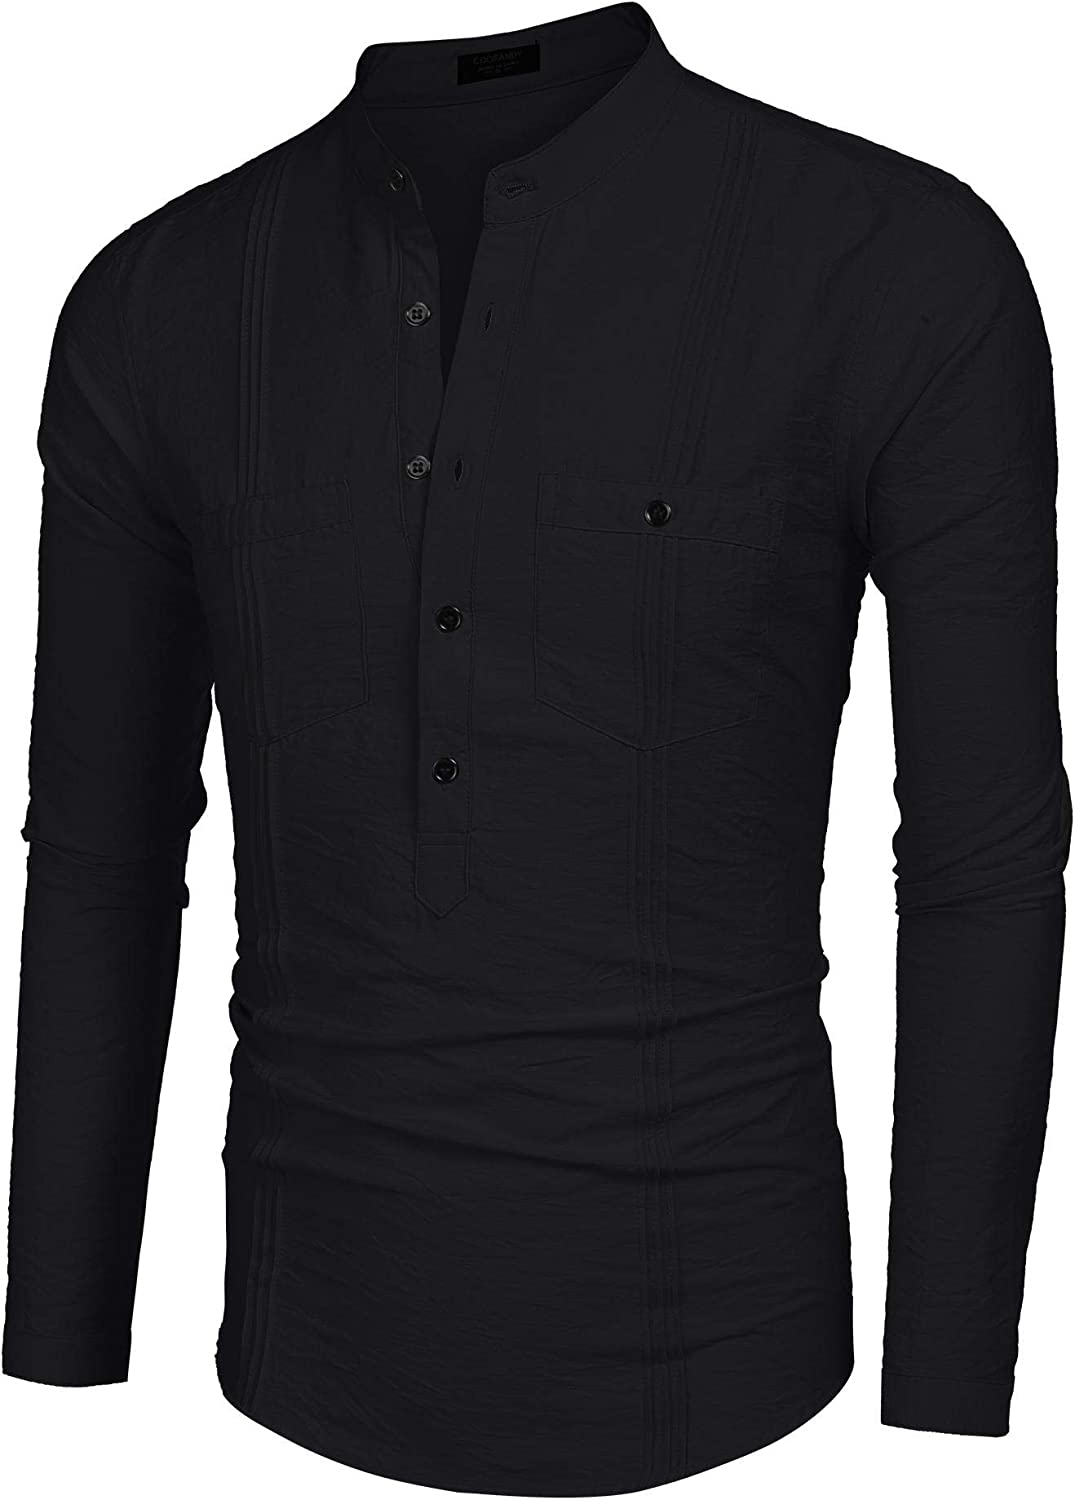 Yugiose Mens Long Sleeve Tunic-Style Stand Collar Shirt with Pockets Casual Button-Down Shirts